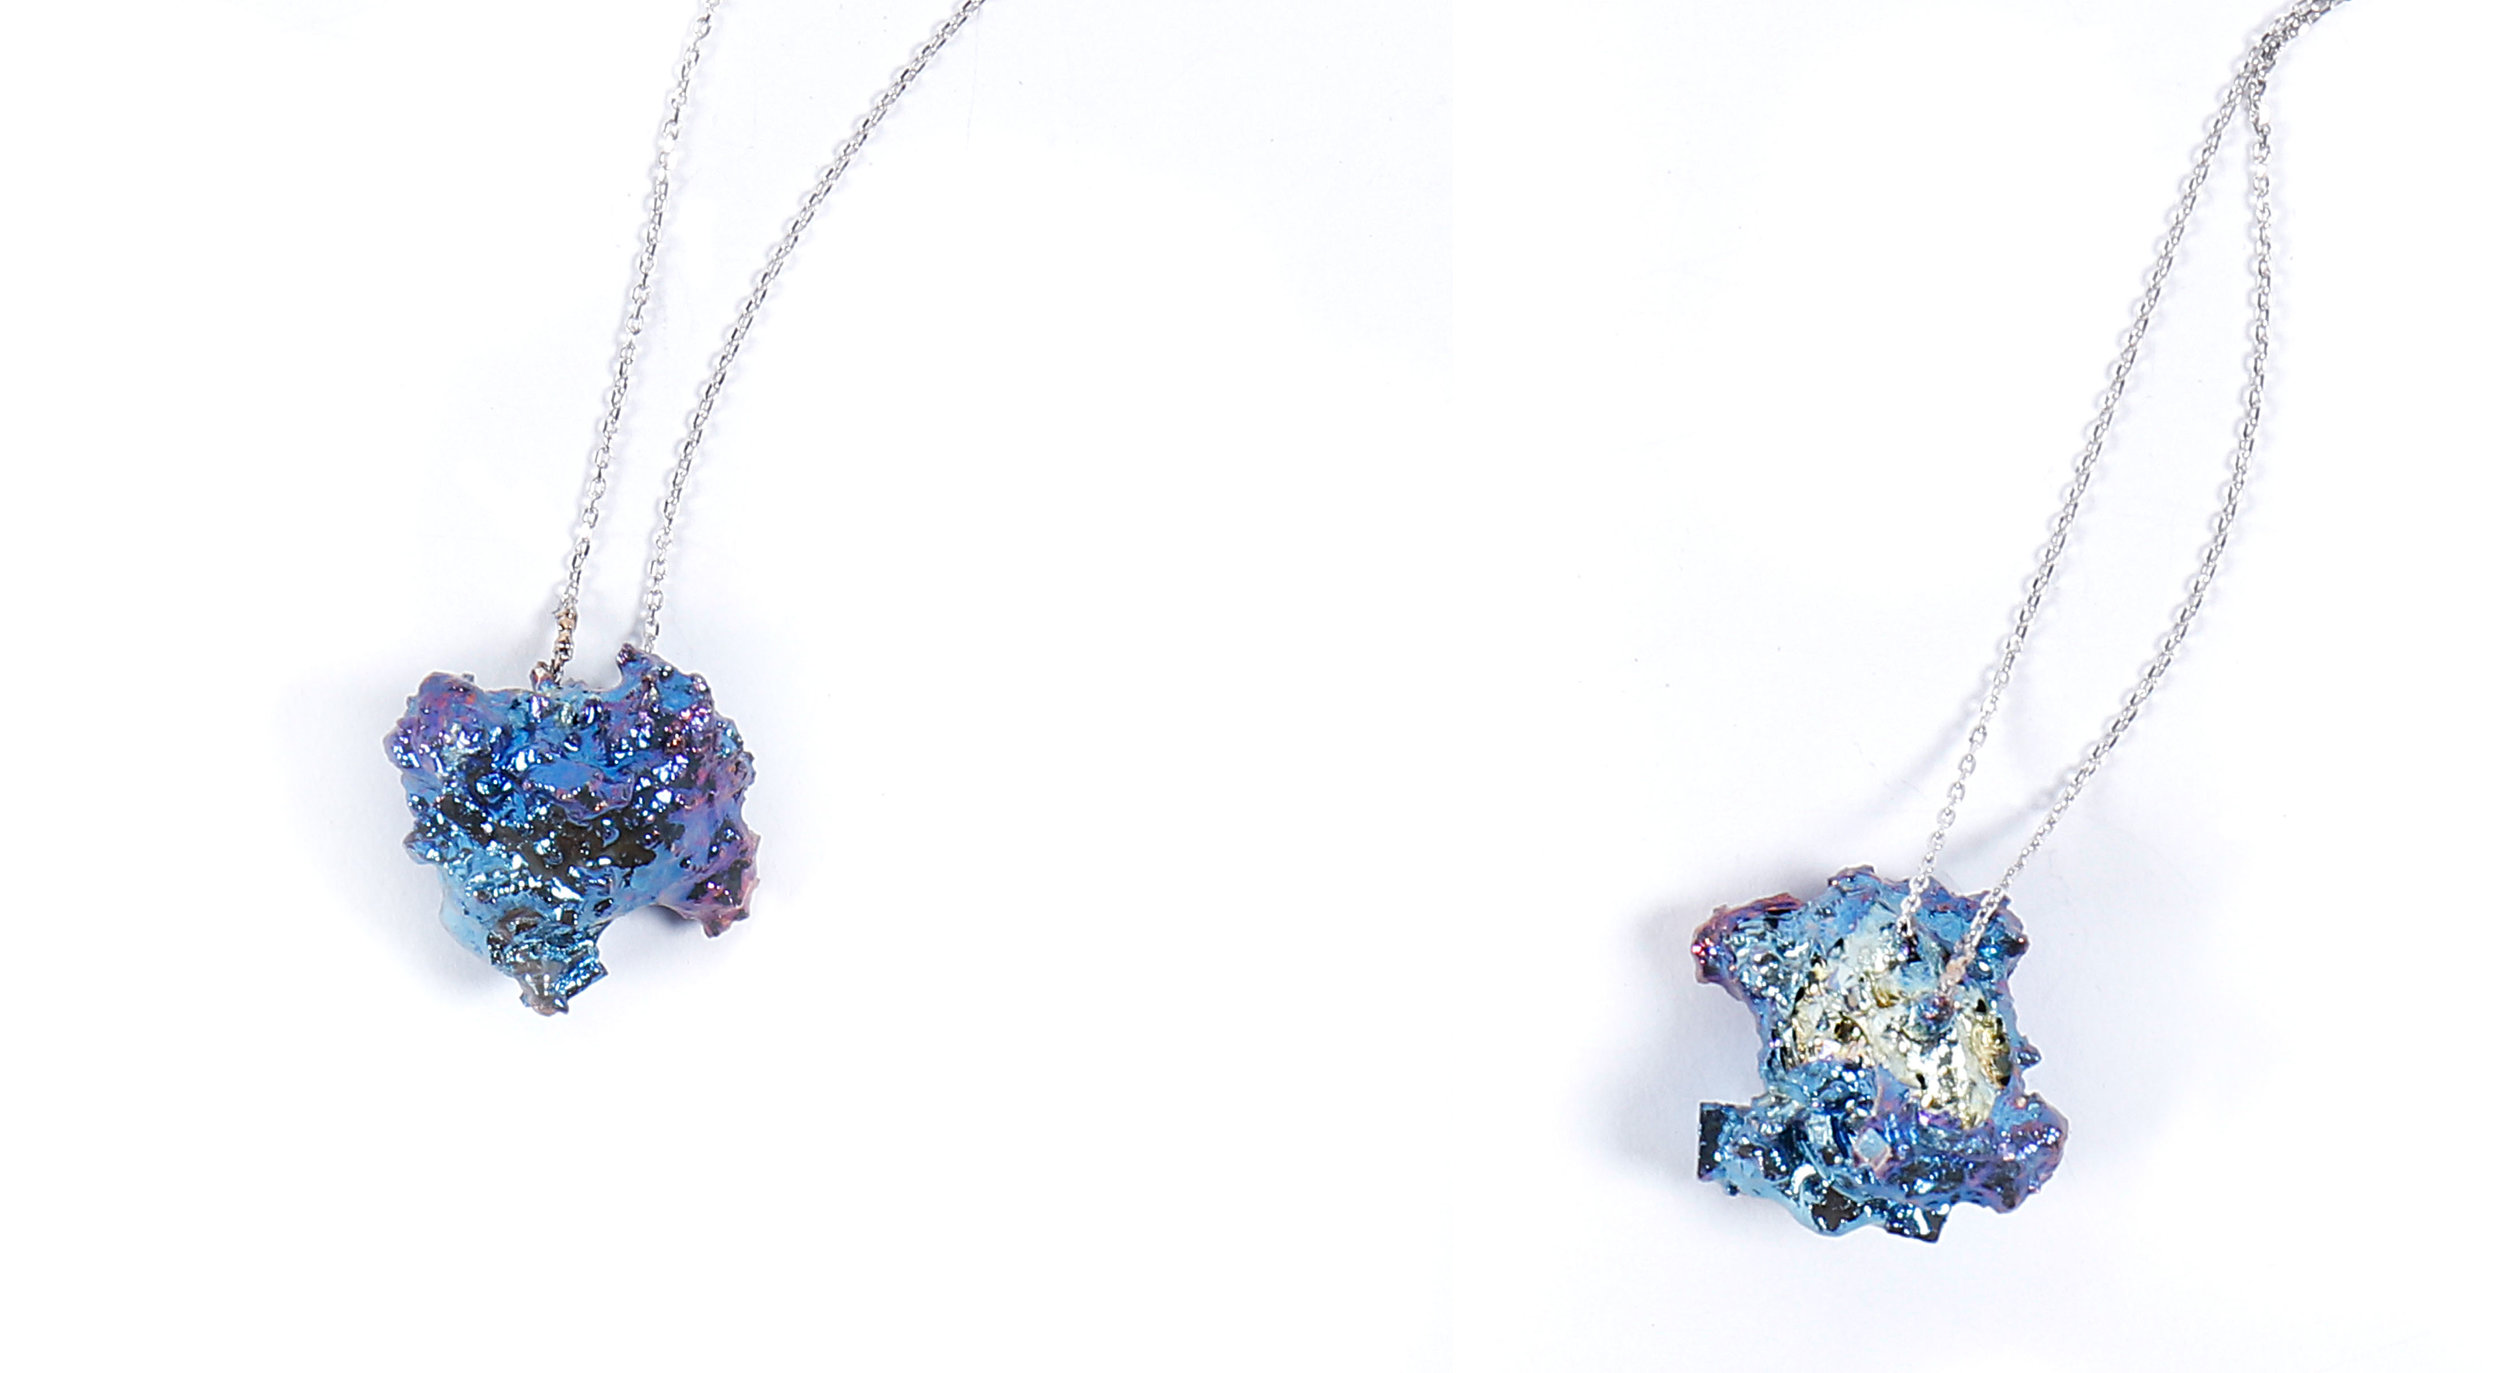 Necklaces from Sara Chyan's  Emotional Jewelry  collection; Materiality–Bismuth and 925 Sterling Silver